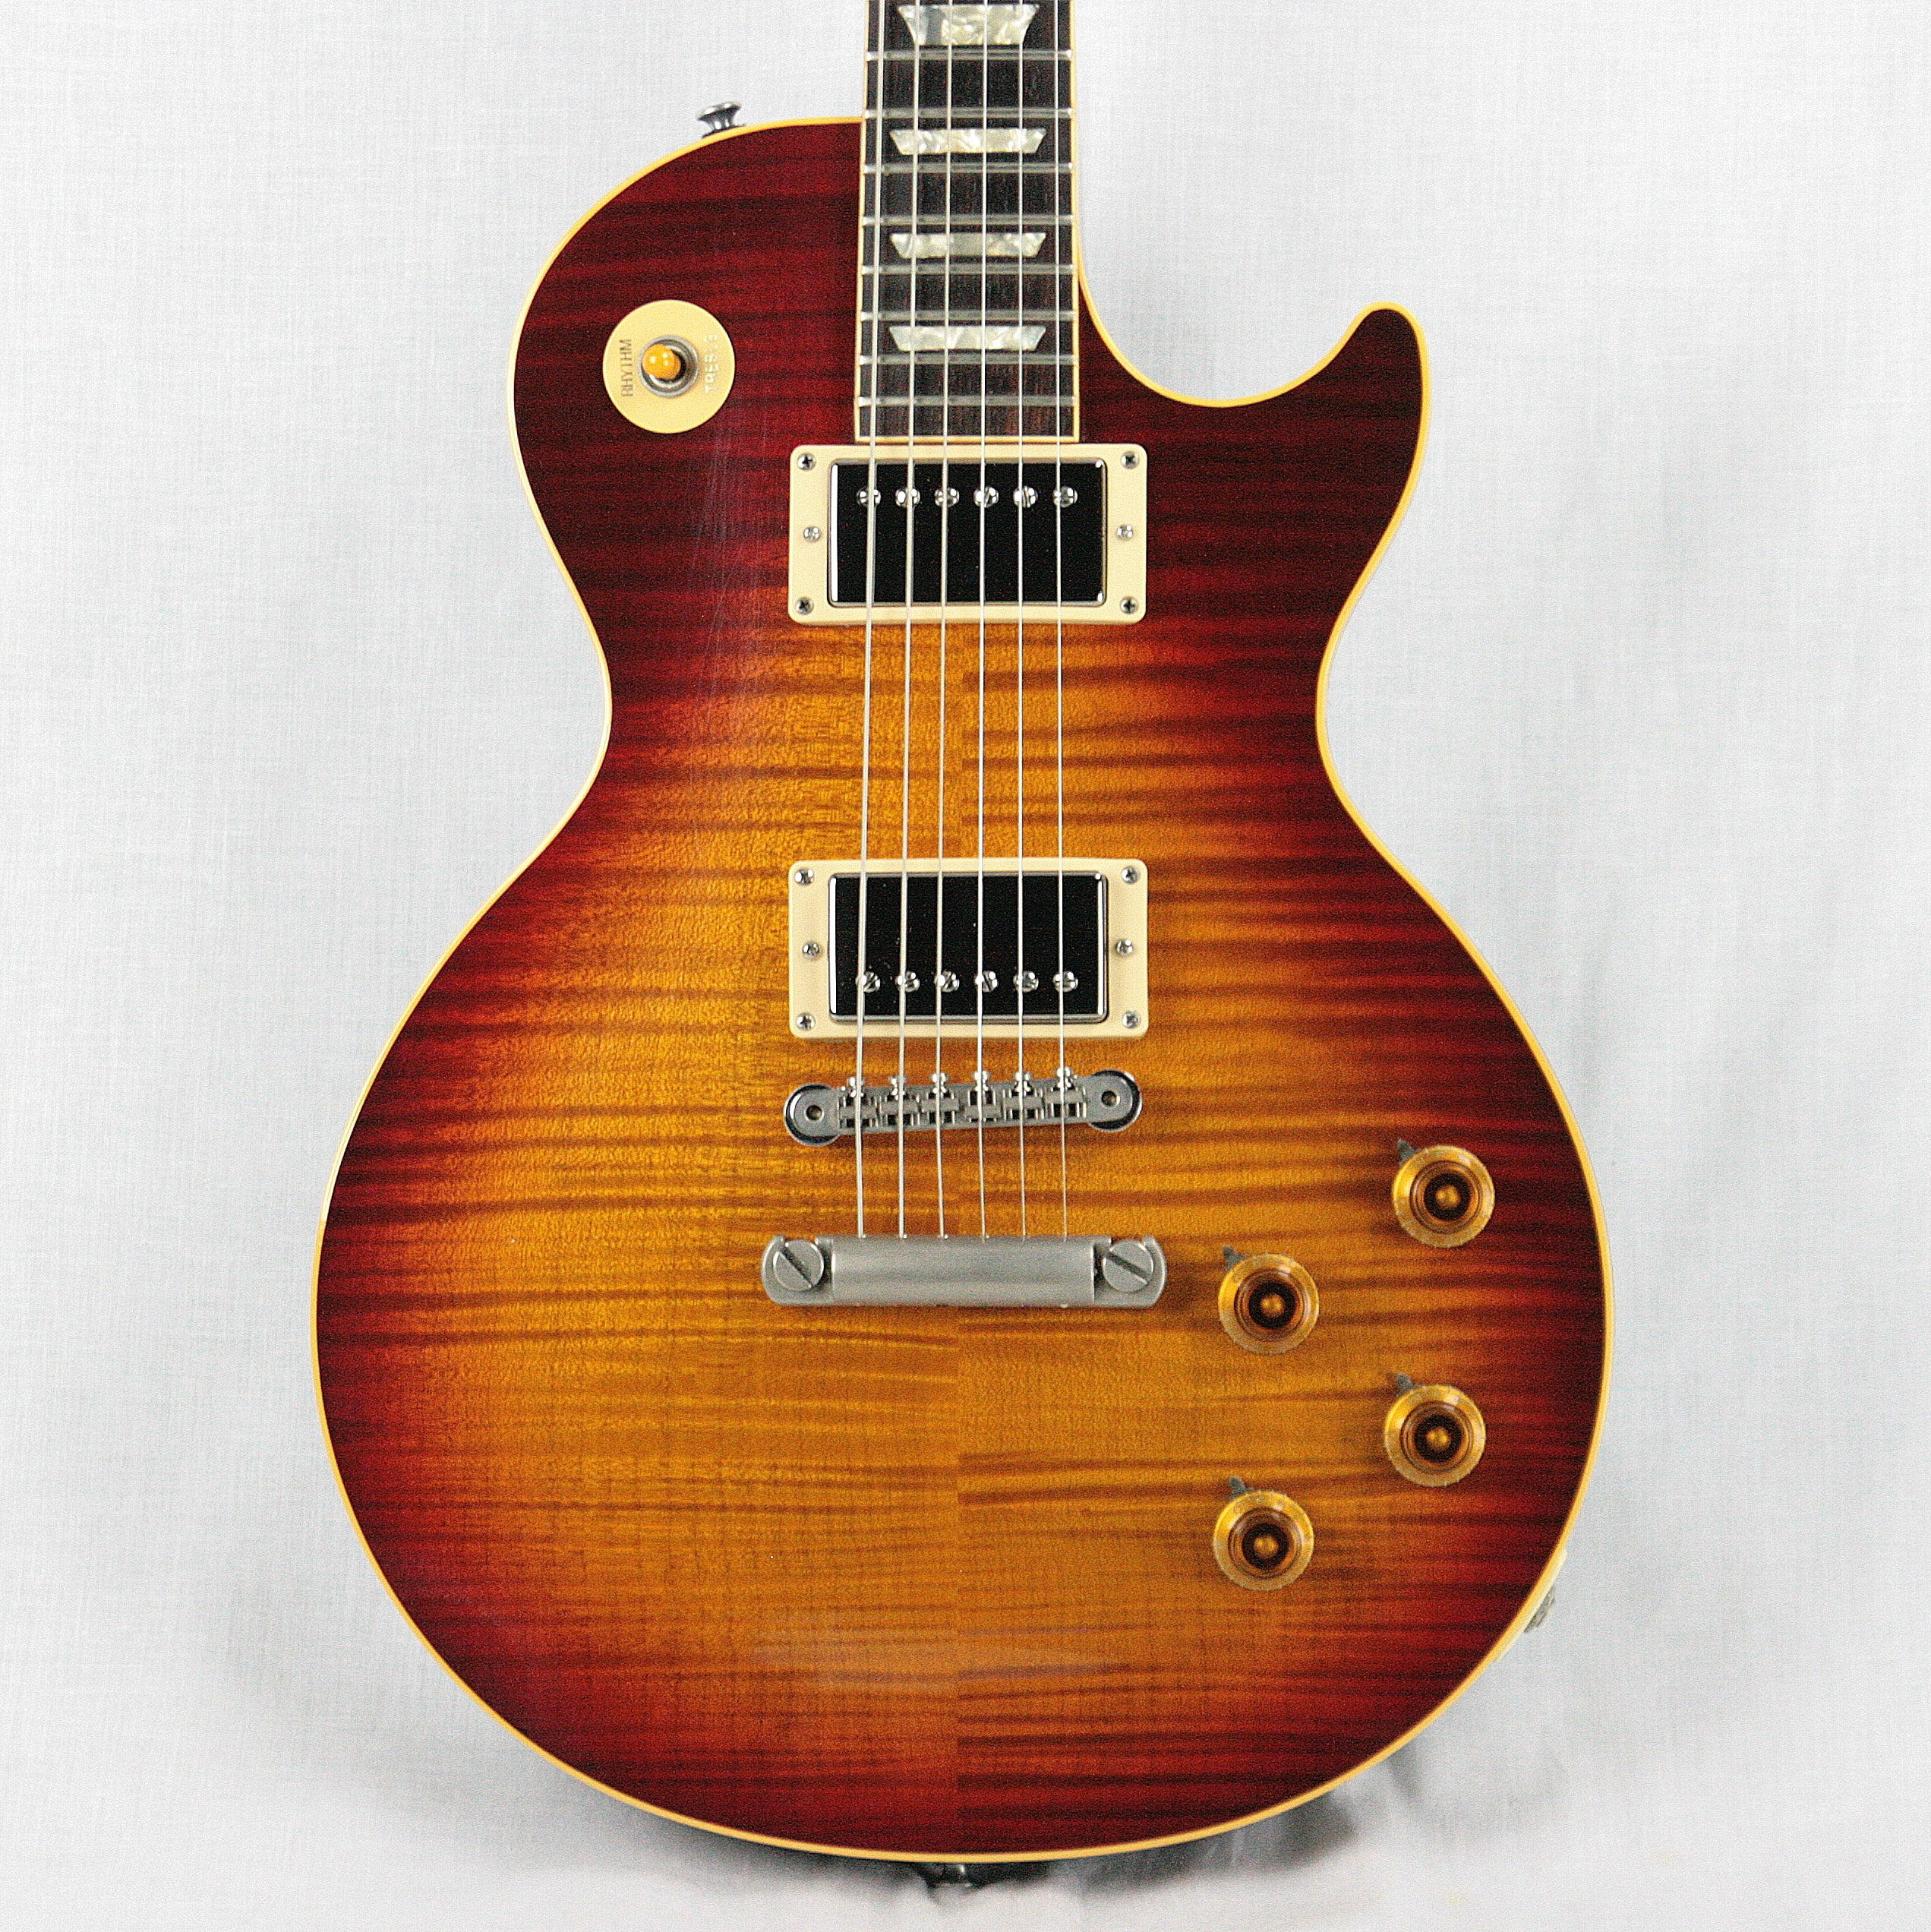 1989 Gibson YAMANO 59 Les Paul Standard Prehistoric Reissue! 1959 Pre-Historic